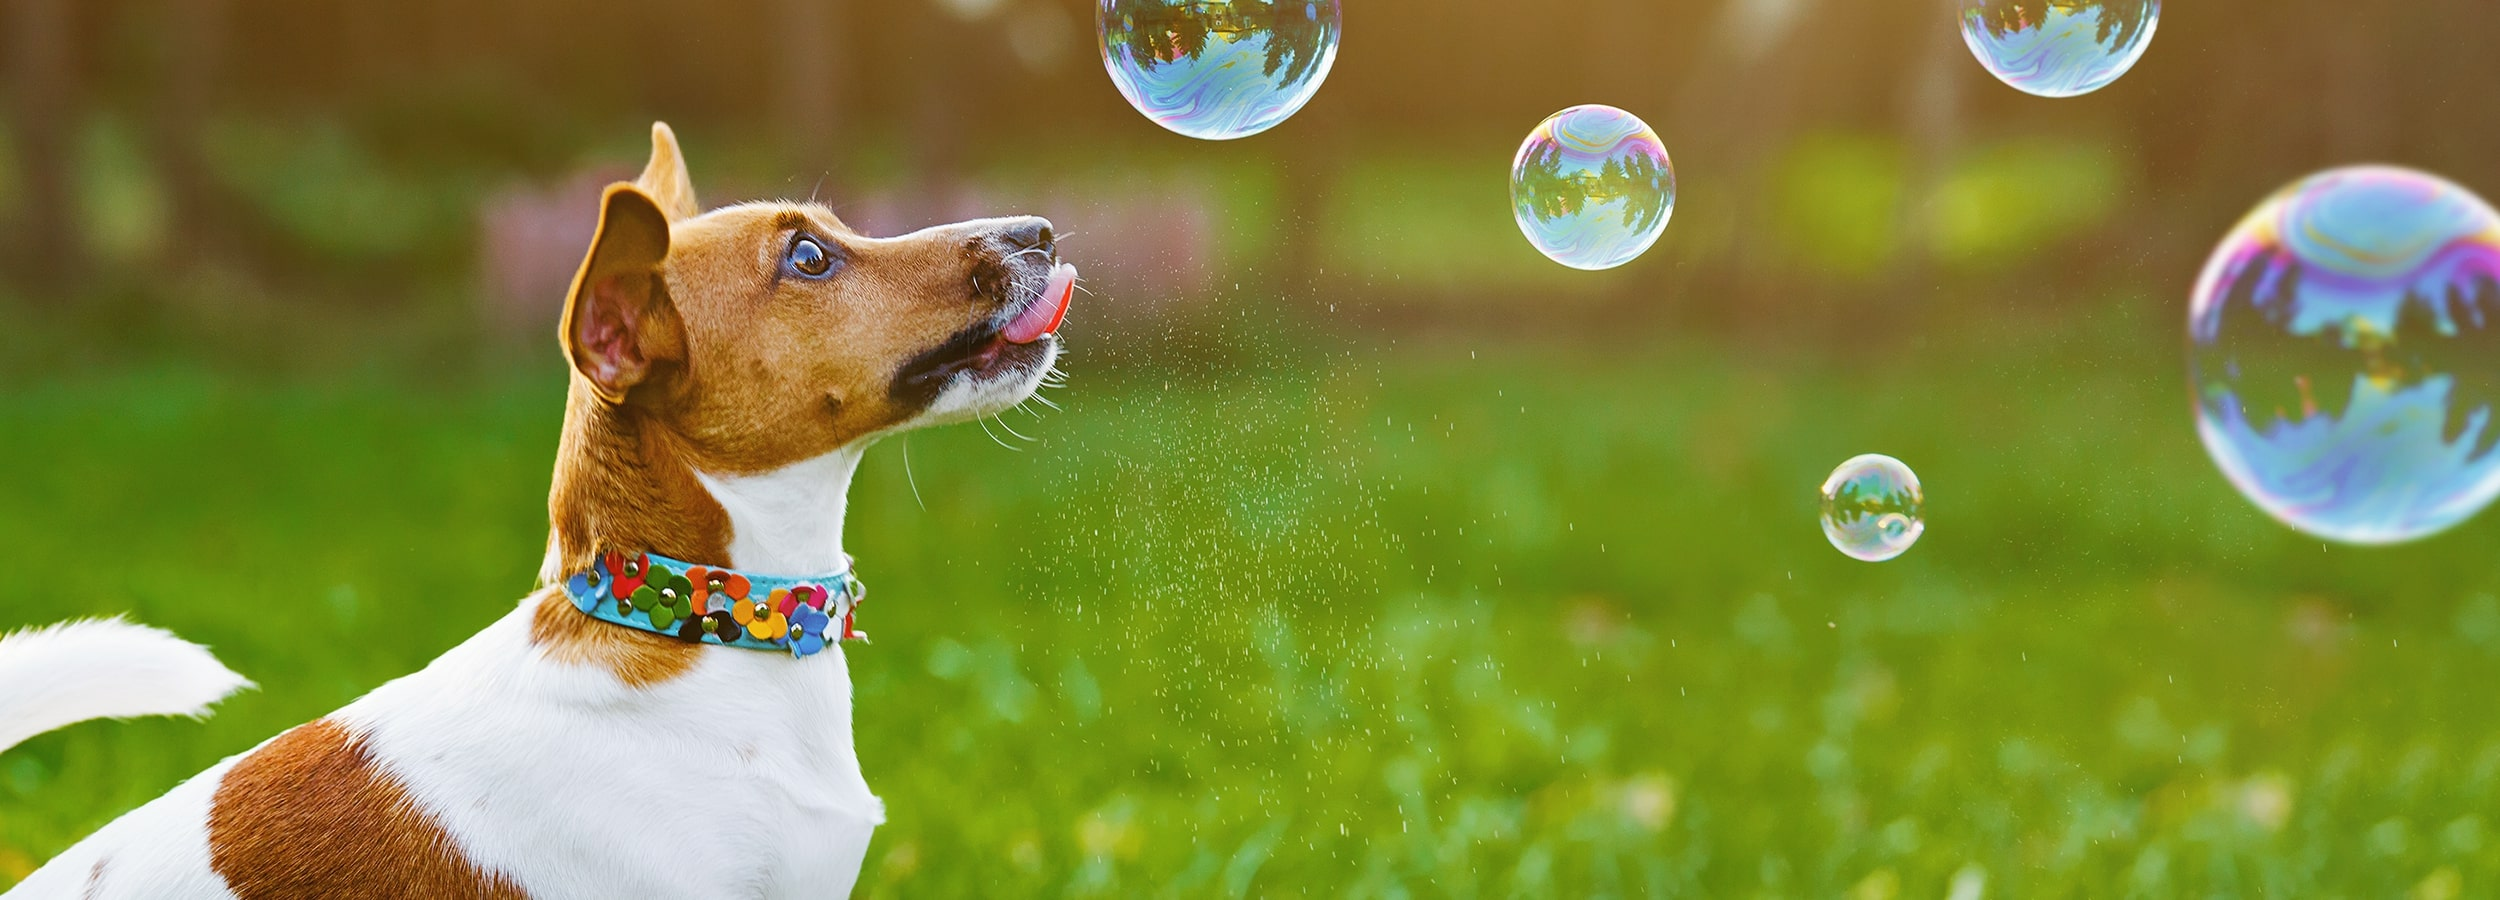 A dog chasing bubbles